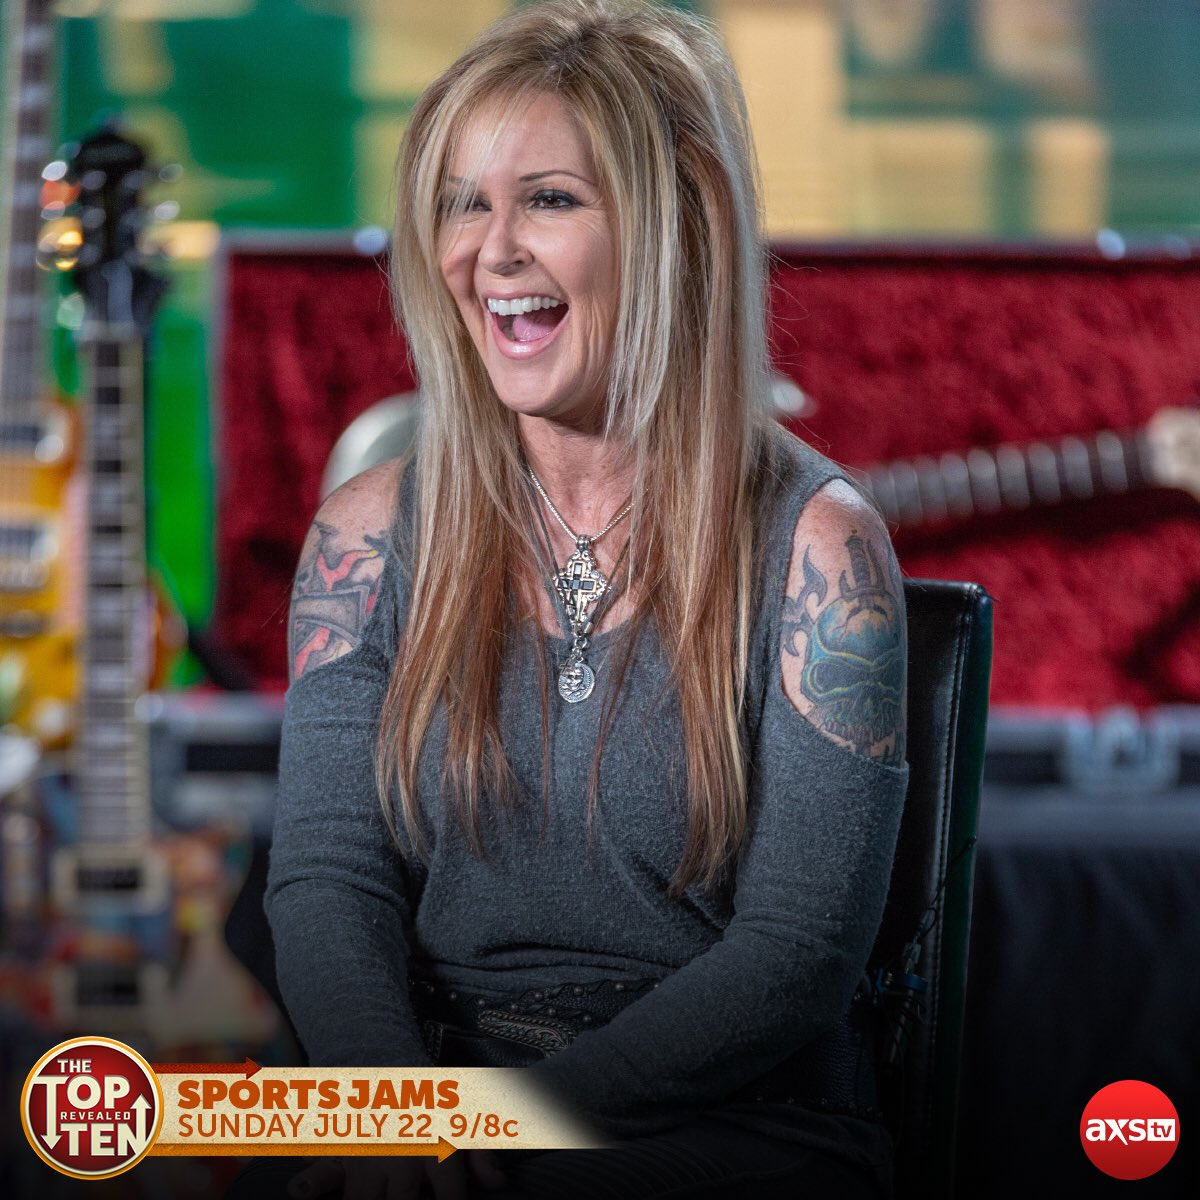 This week on @axstvs show #TheTopTenRevealed were featuring the best sports arena jams! Set your DVR now using this link: vupulse.com/c/3263